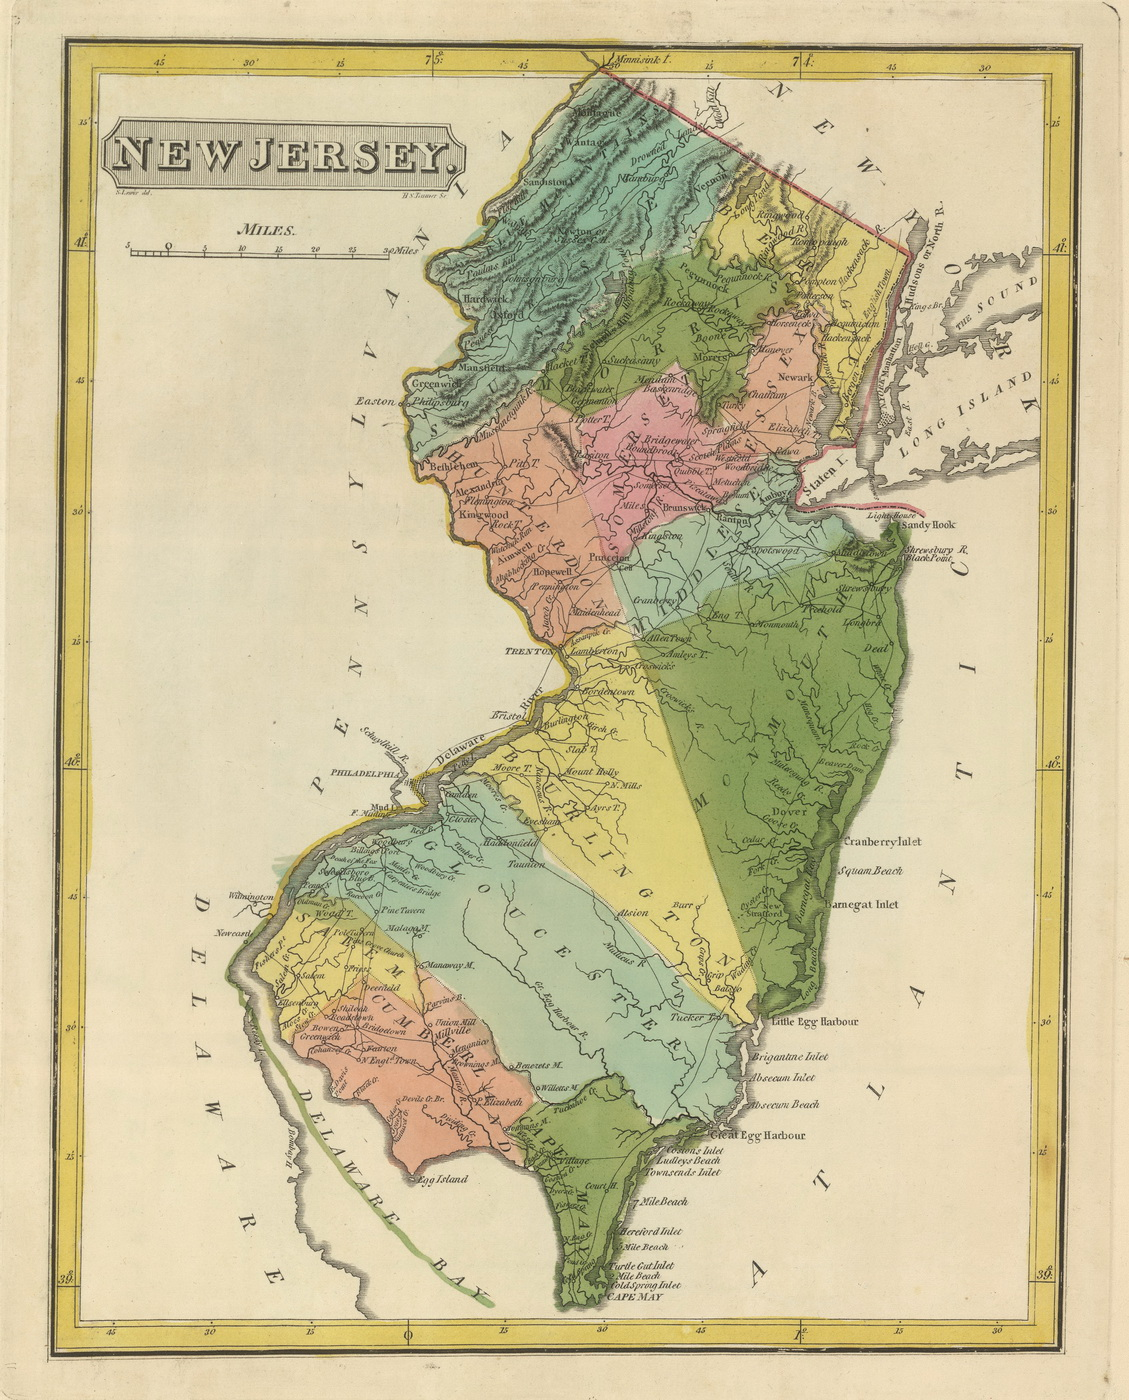 New Jersey State Maps Page - New jersery map